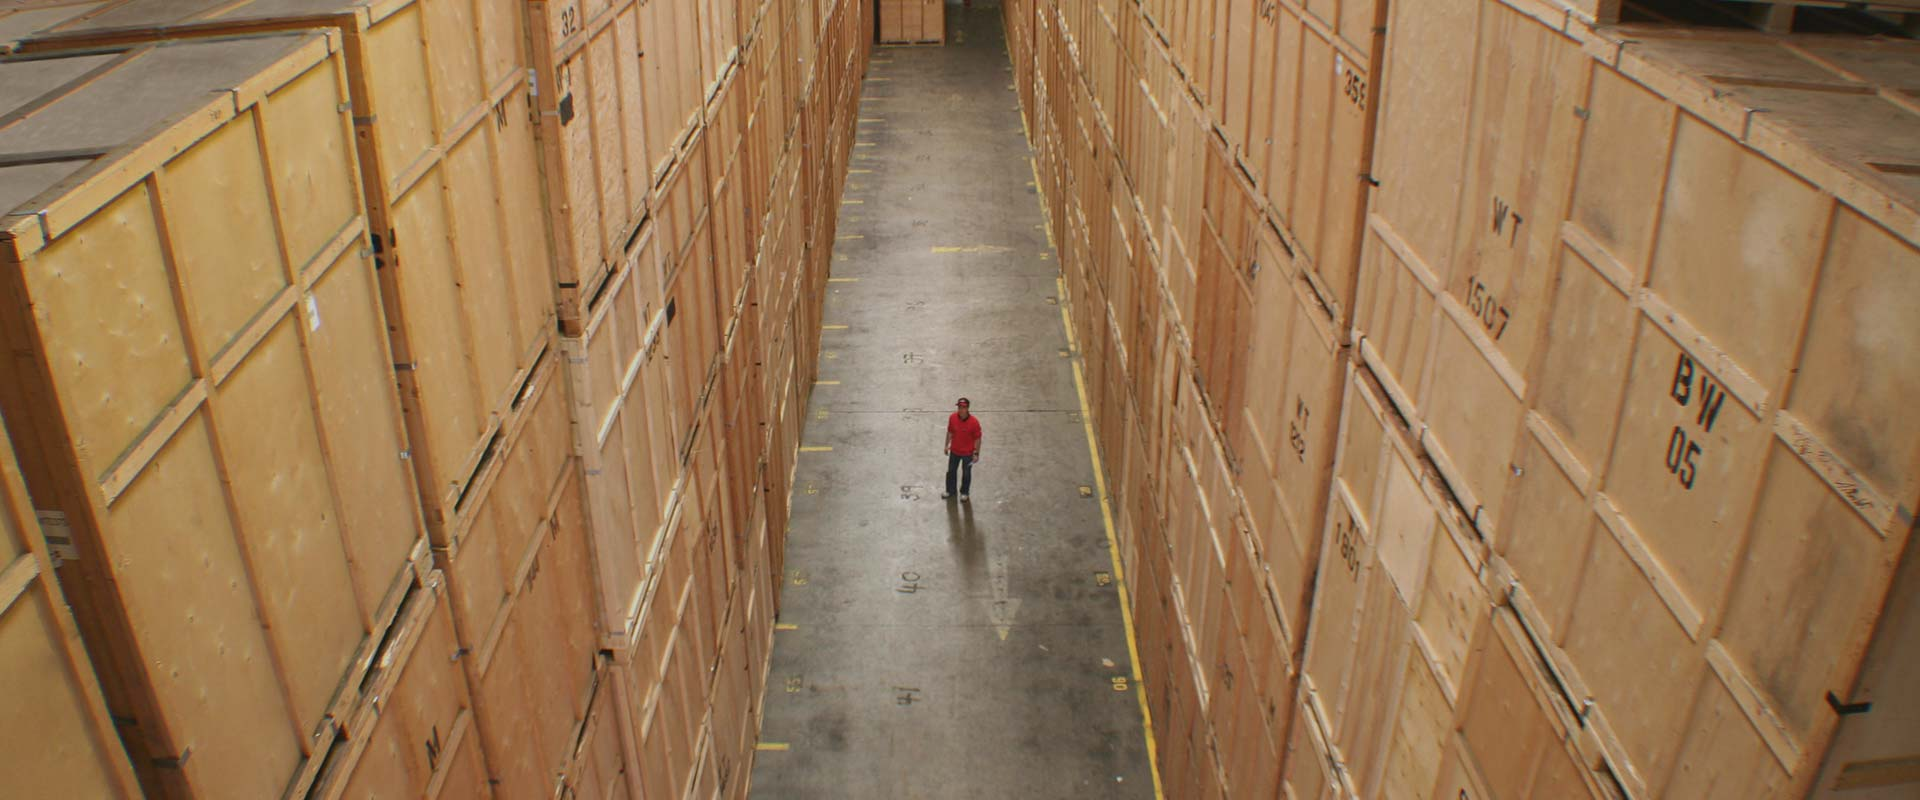 Why People Use Our Container Storage in London